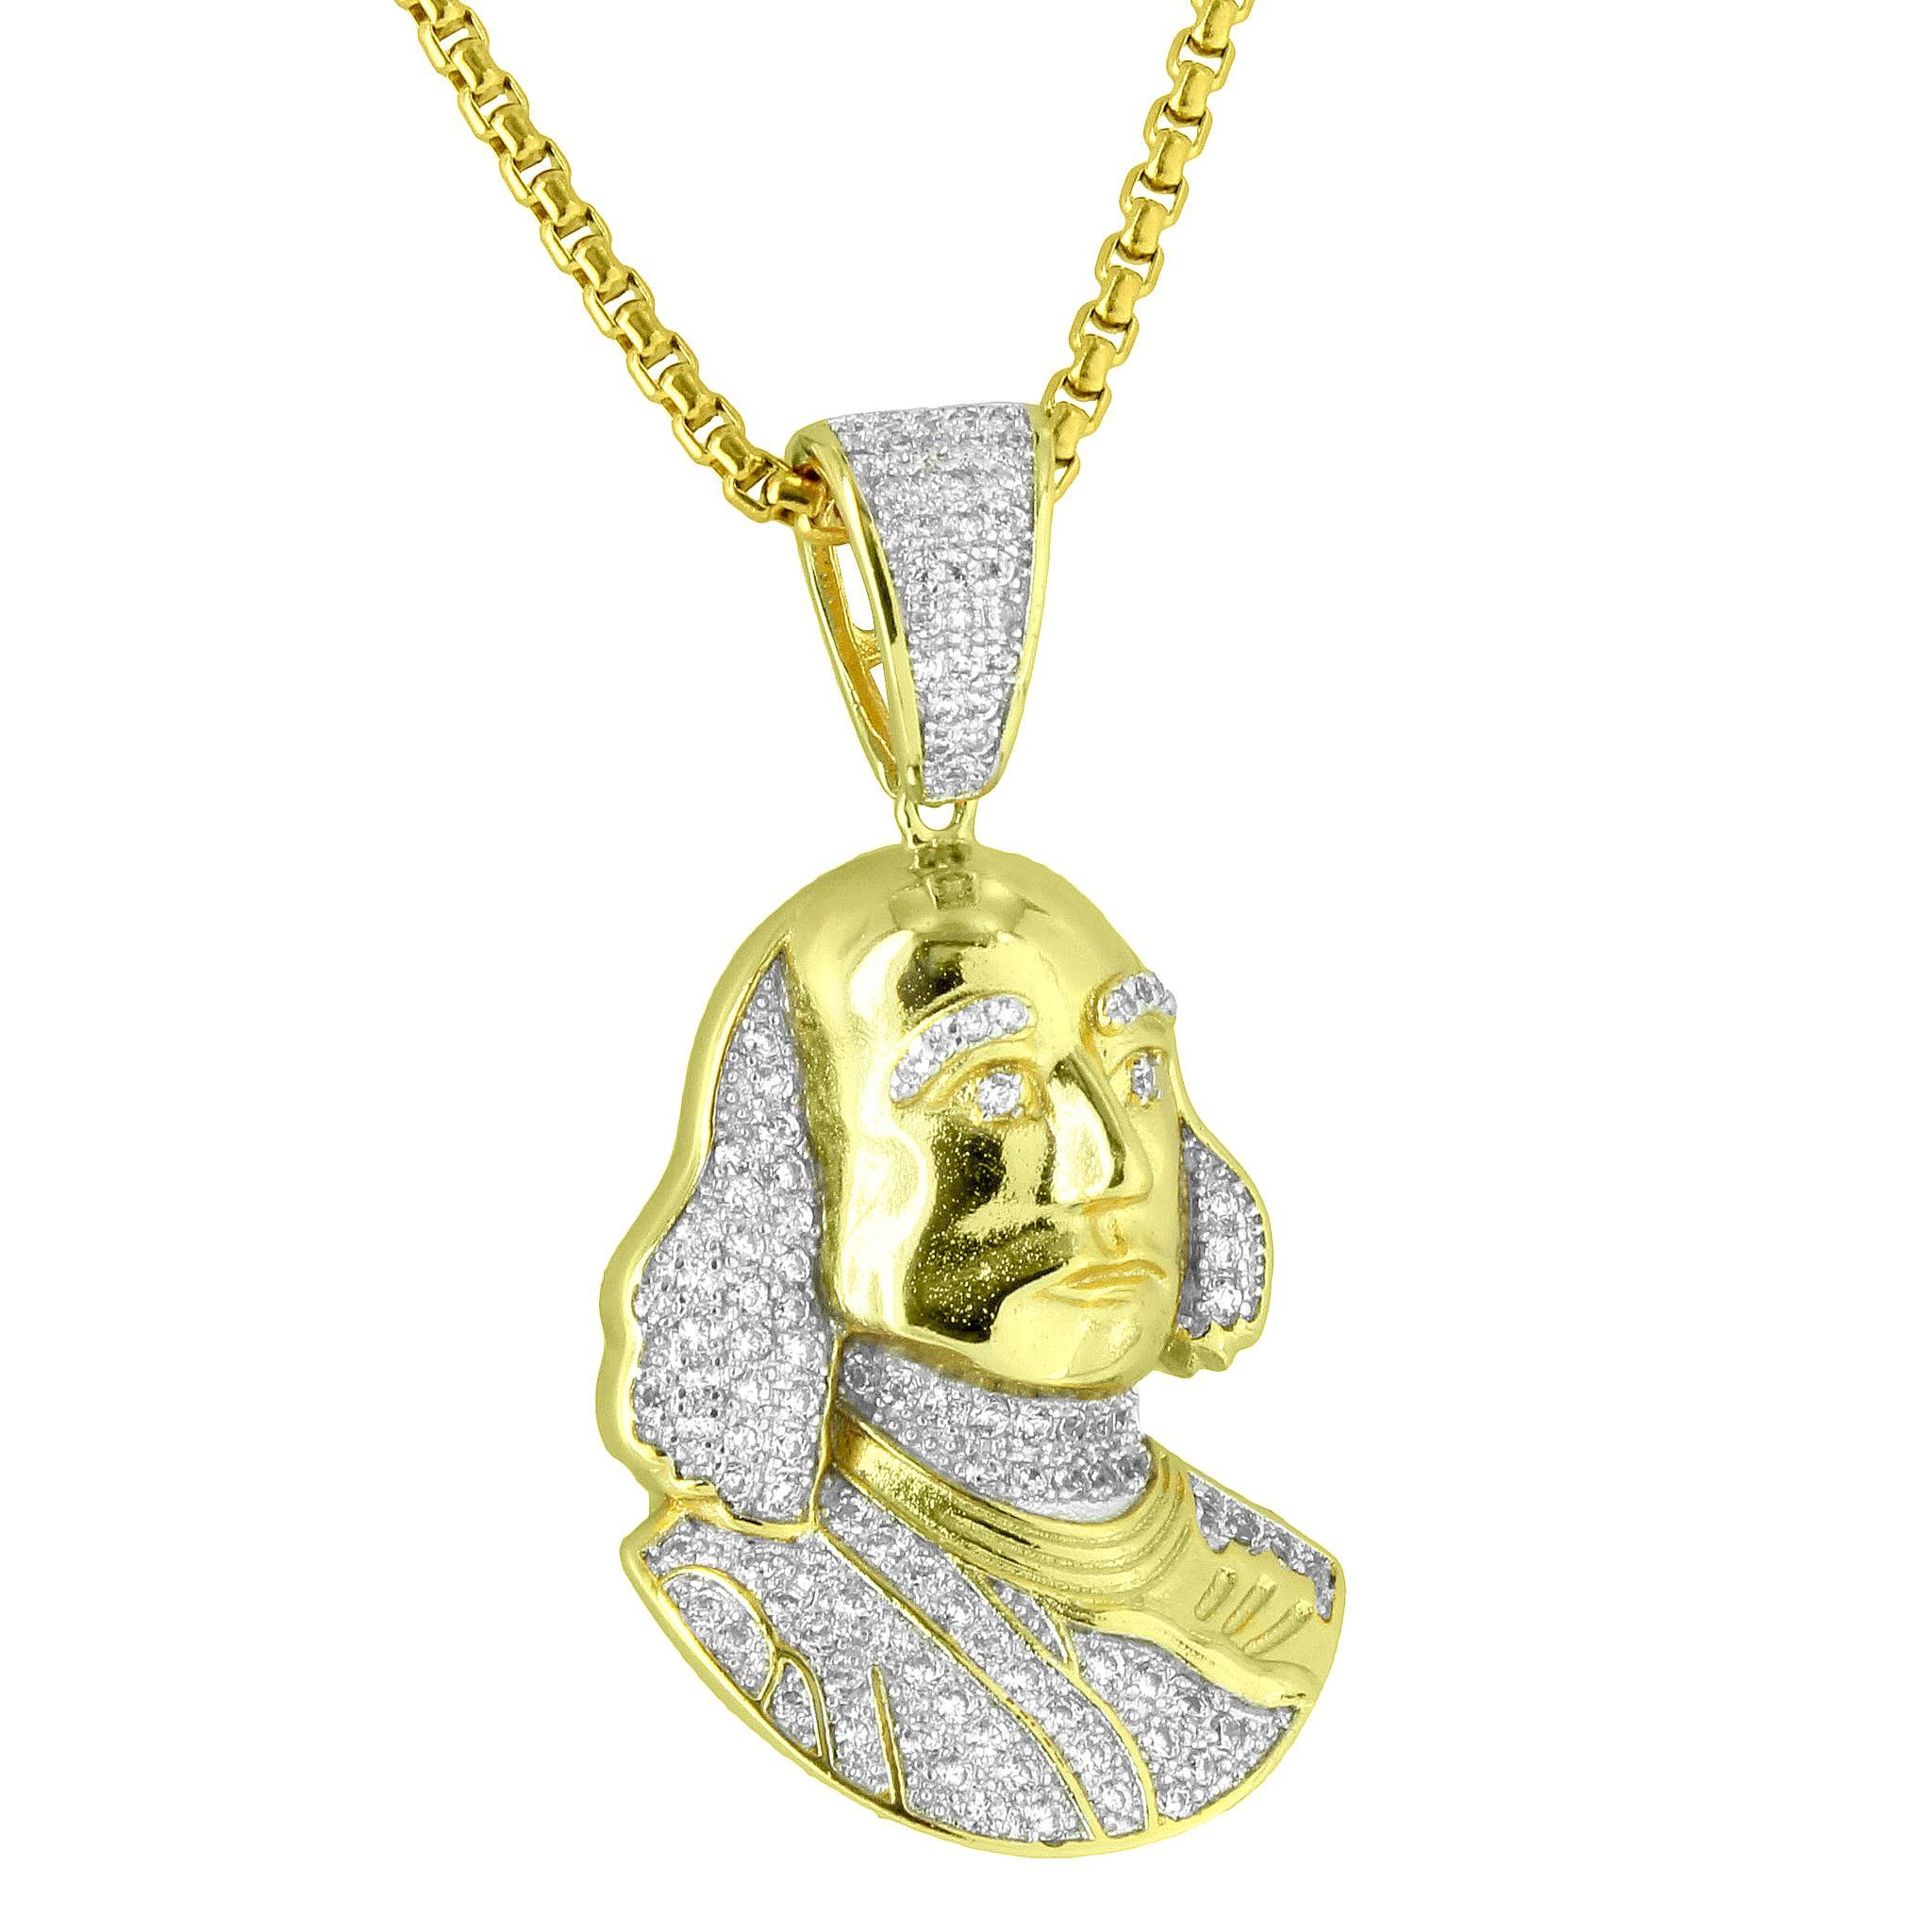 test women transgems lab chain carat necklaces necklace in diamond moissanite positive item jewelry grown yellow for pendant solitaire from gold